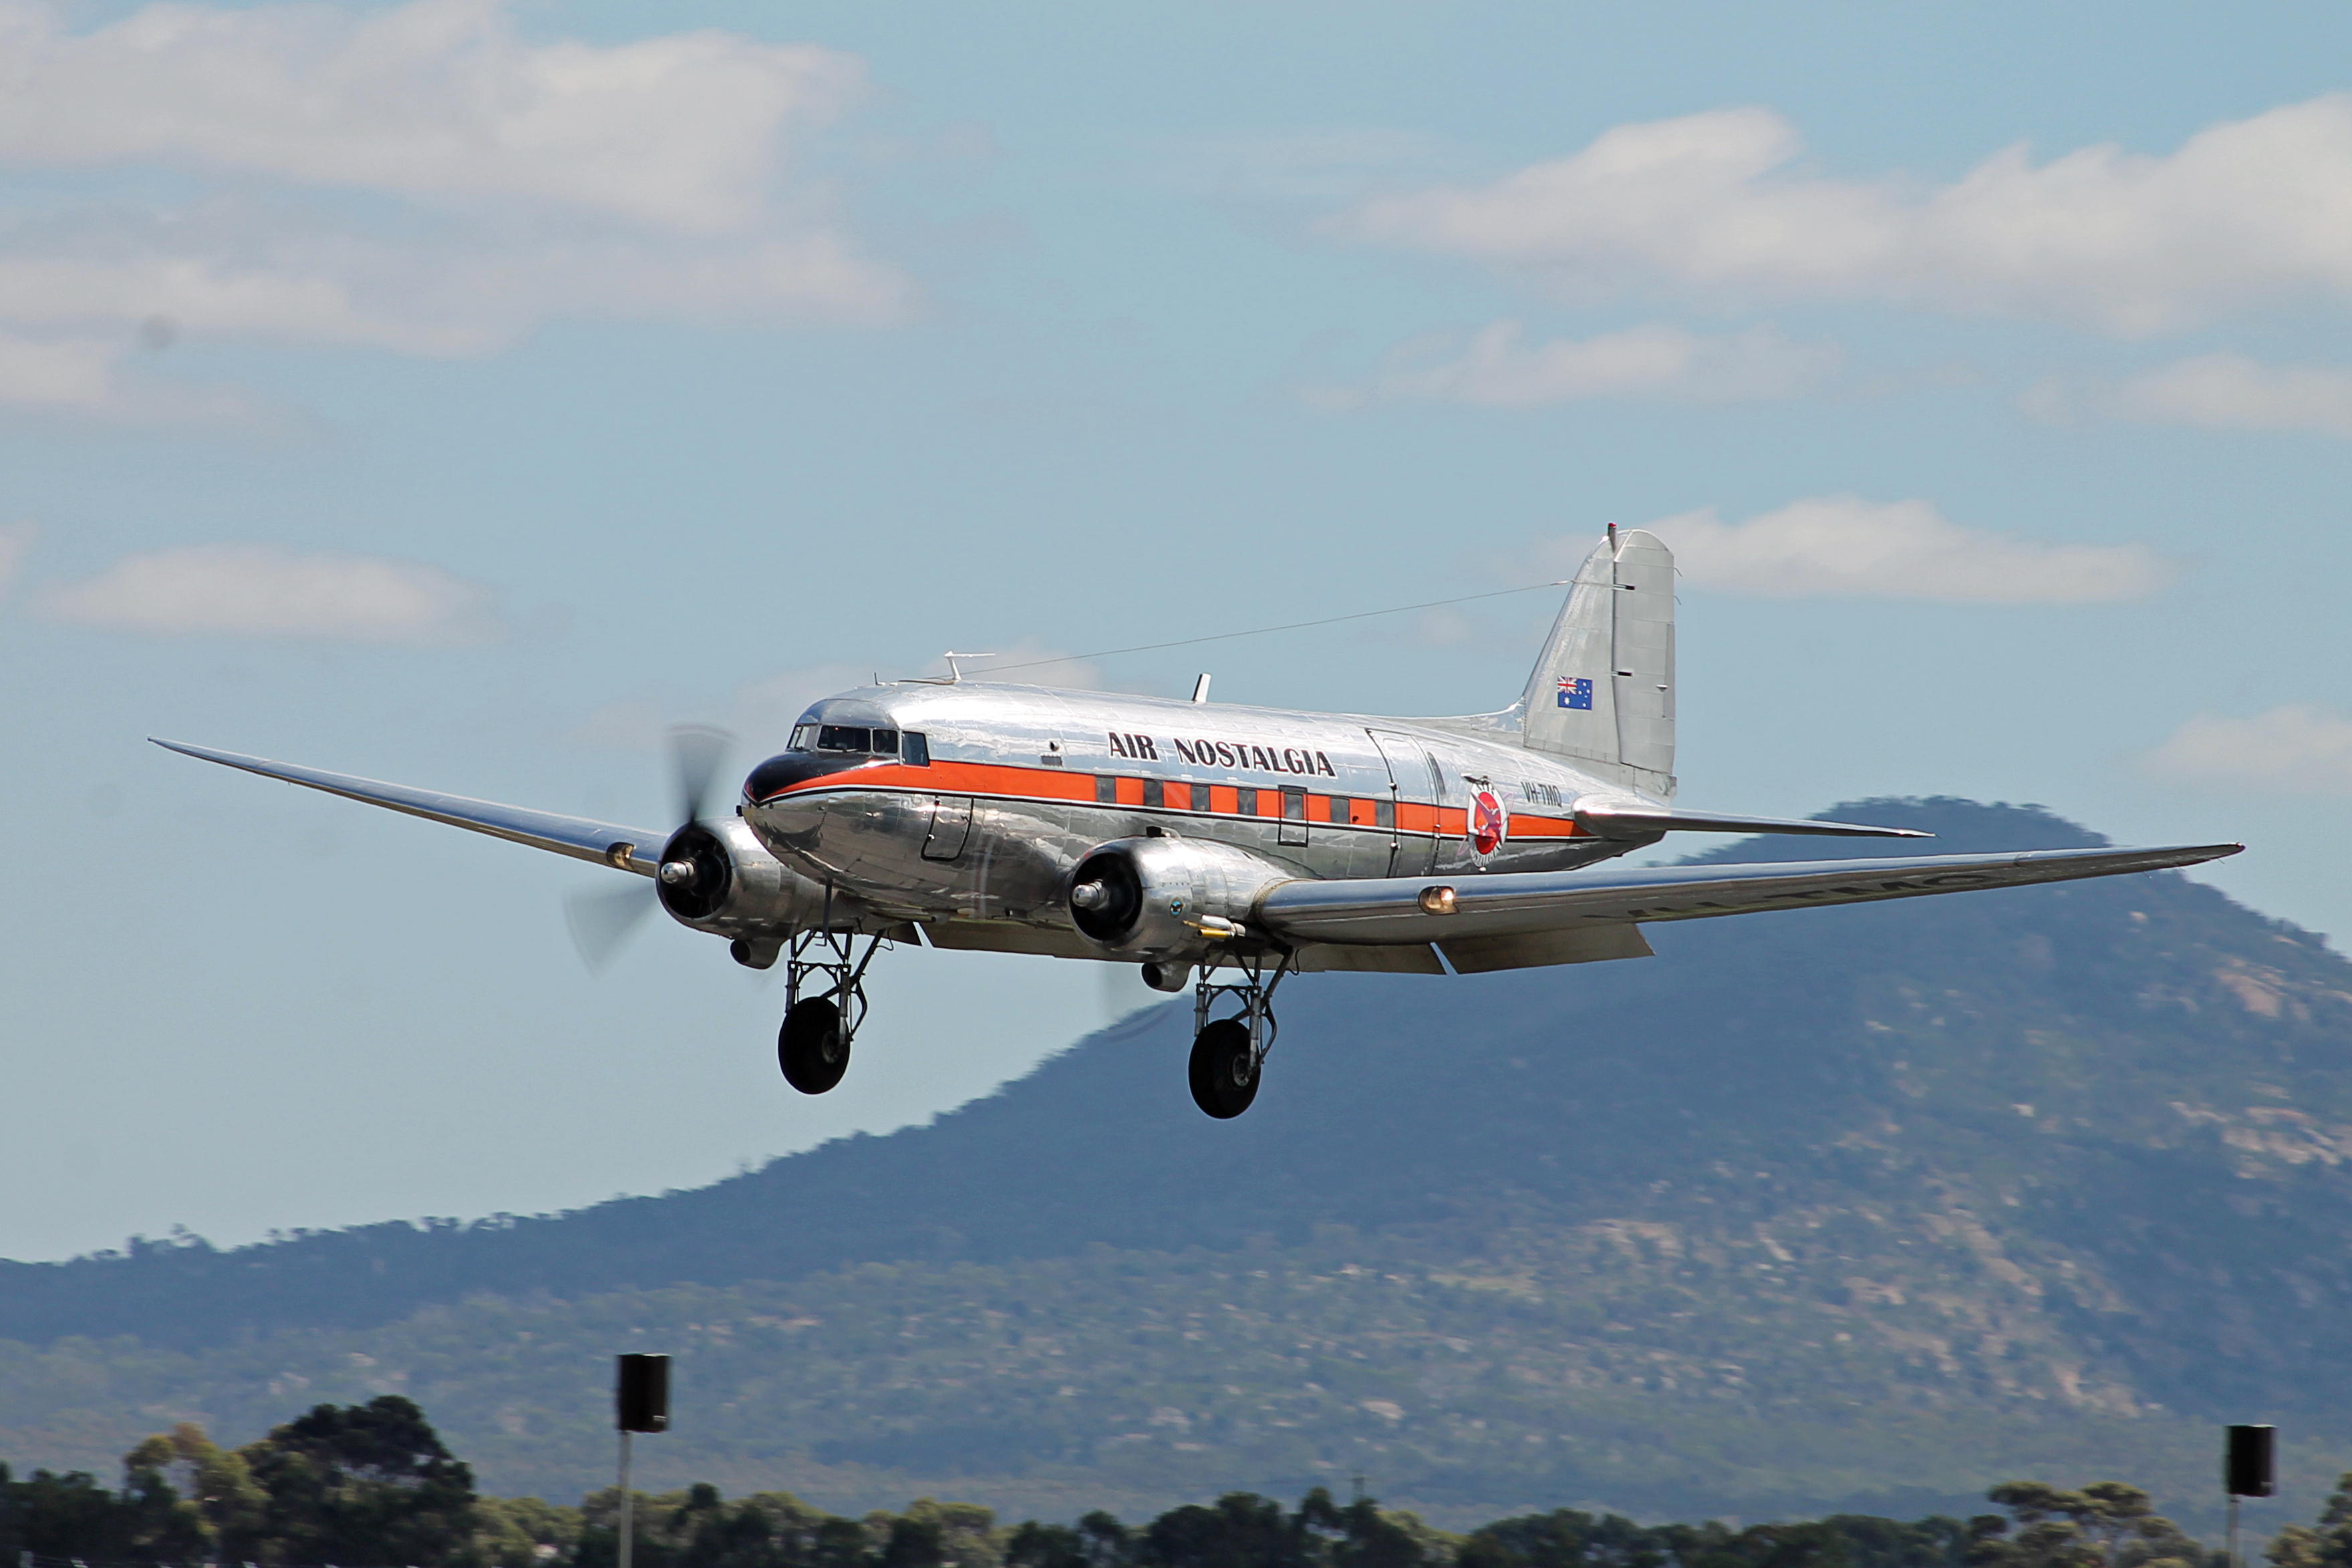 Avalon Air Show – Current Civil Aircraft